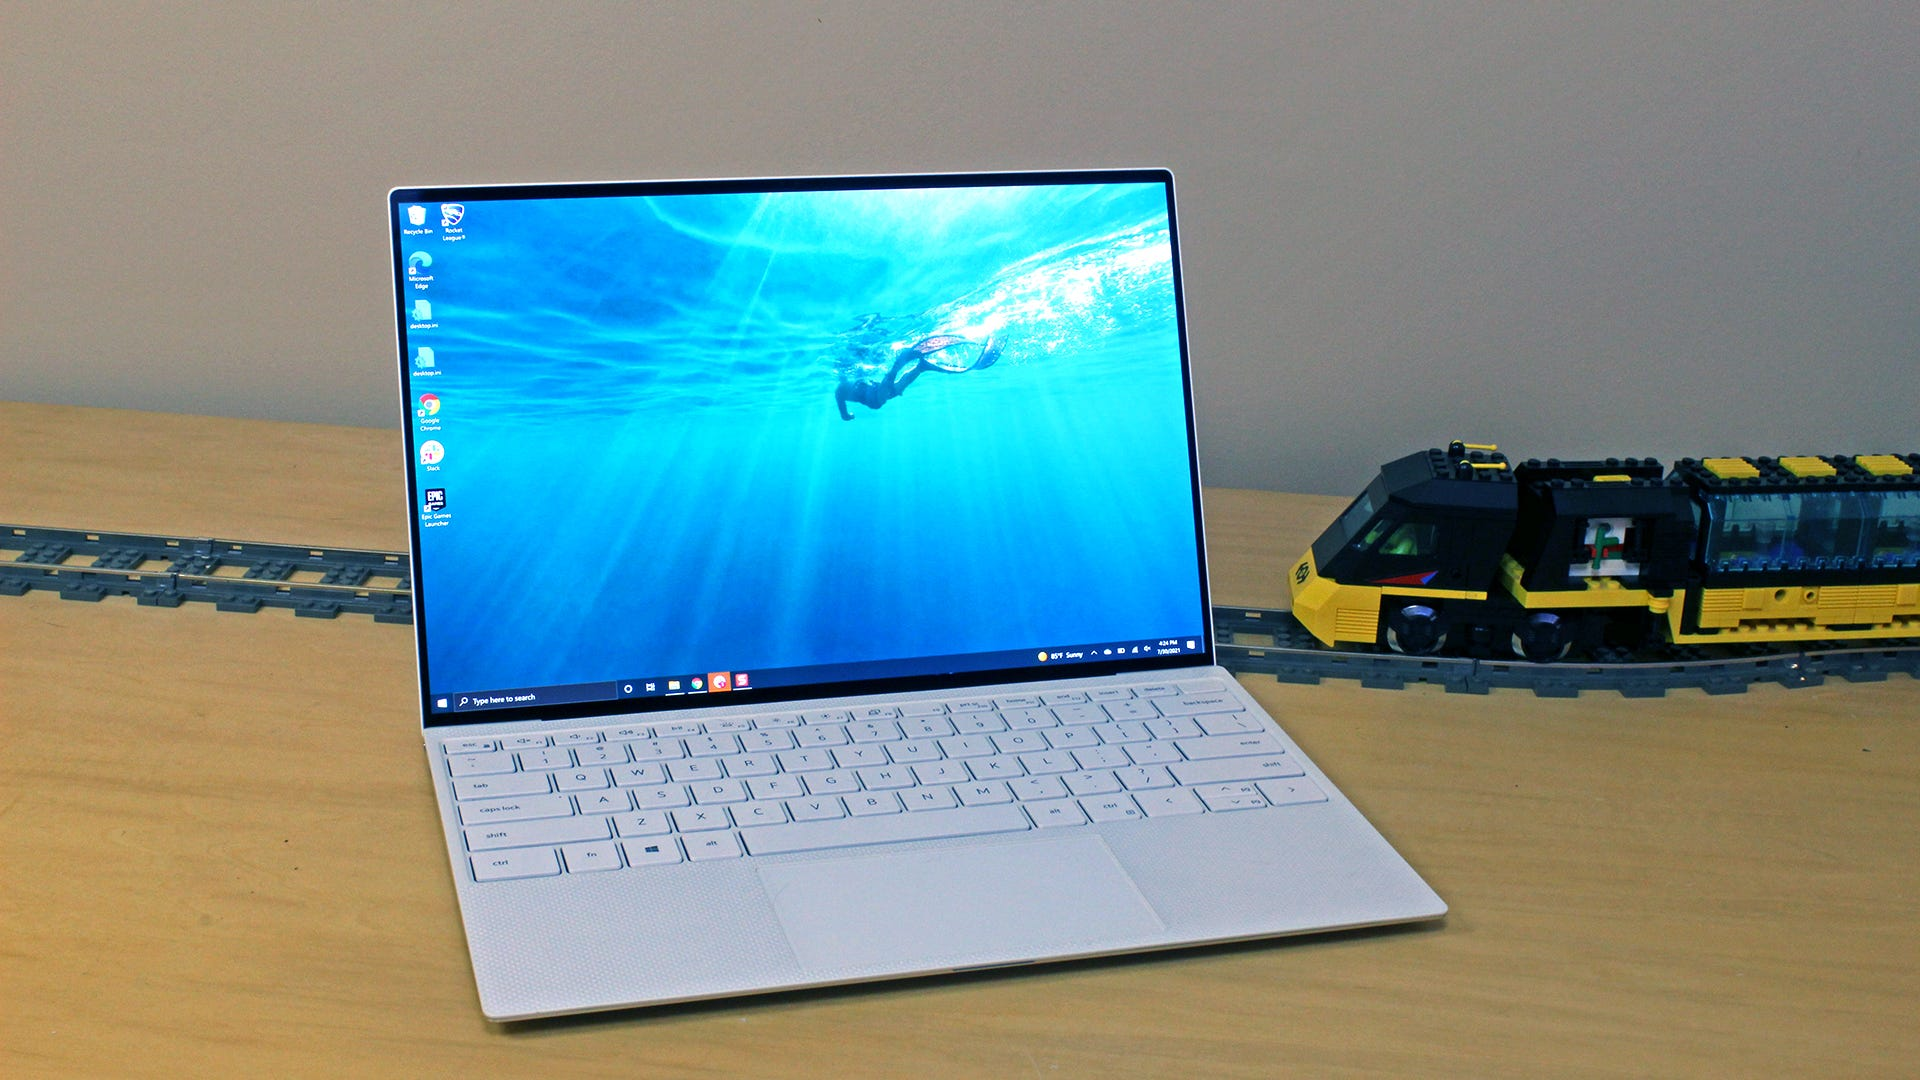 The XPS 13 OLED laptop sitting on a table with a toy train on a traintrack behind it.